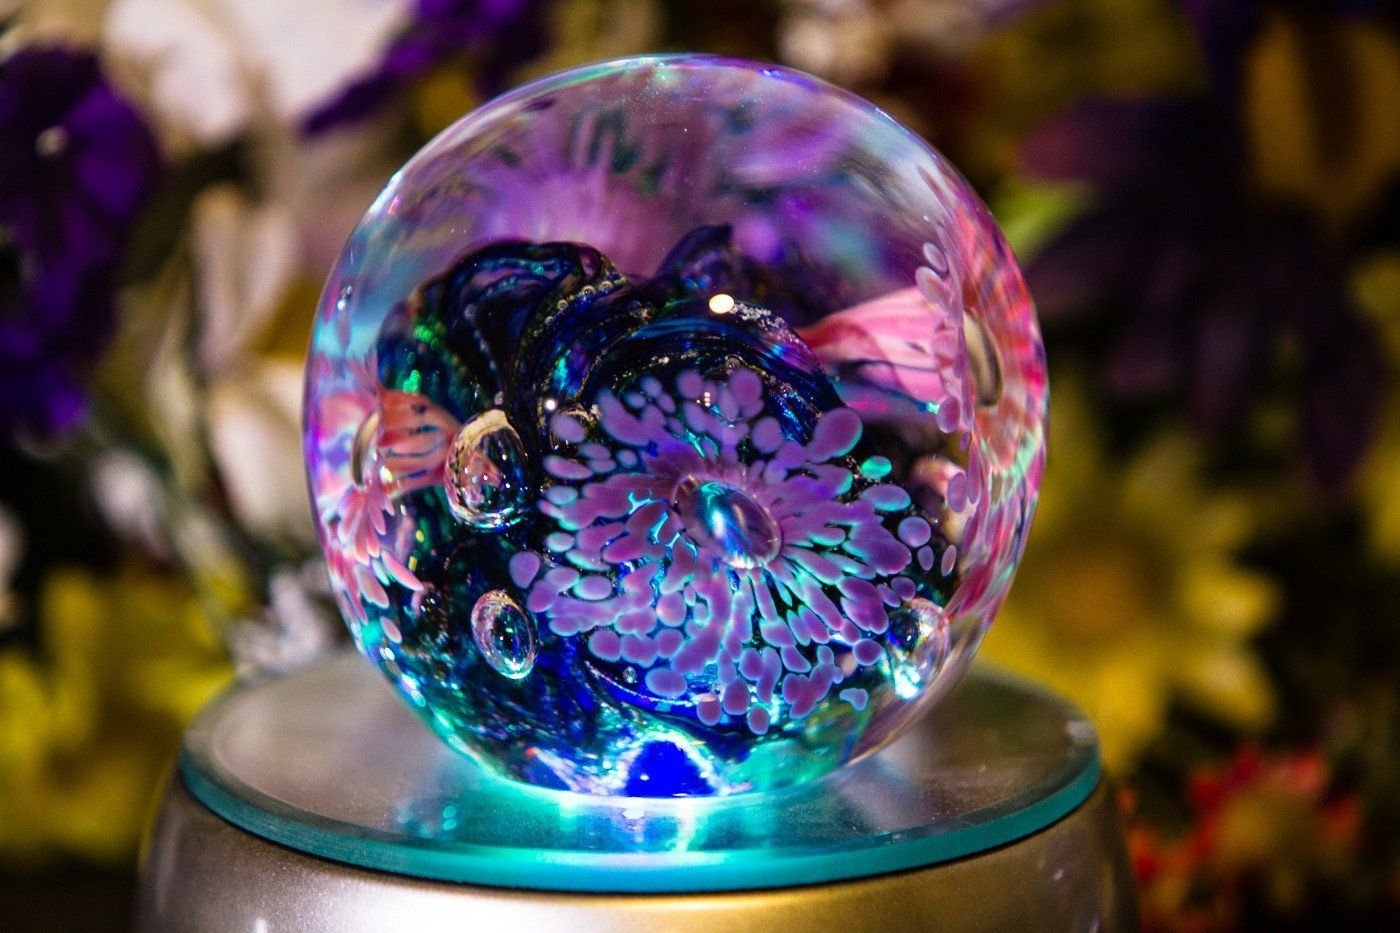 Illuminated Flower Explosion with Infused Cremation Ashes